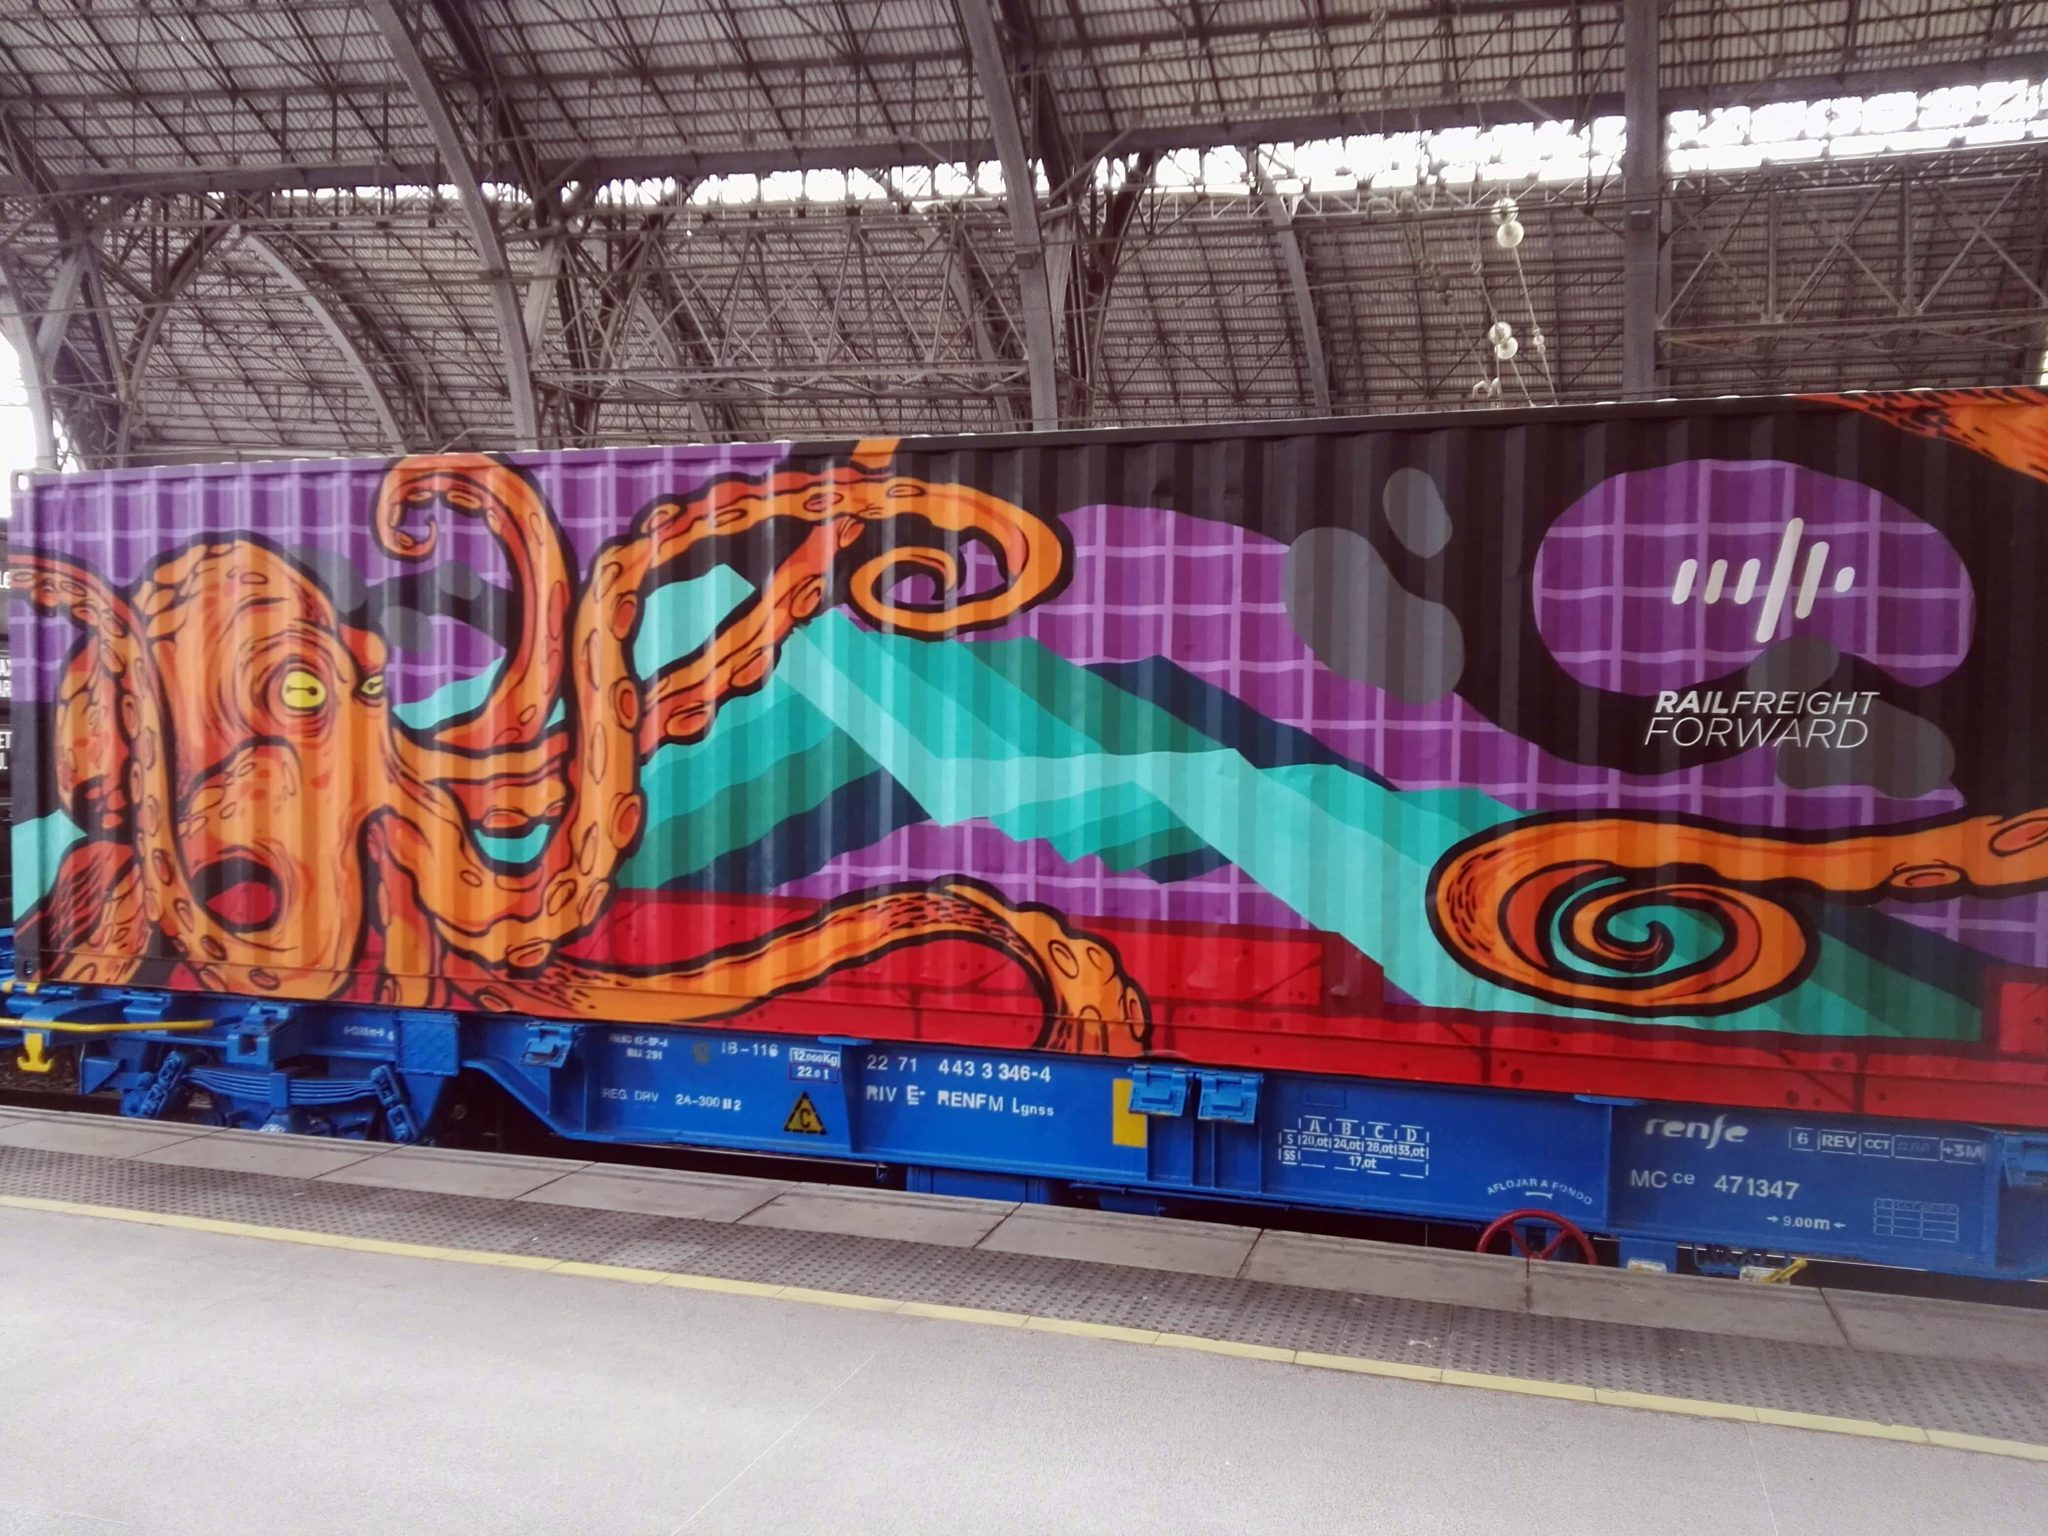 Riseone Noah's train Street art